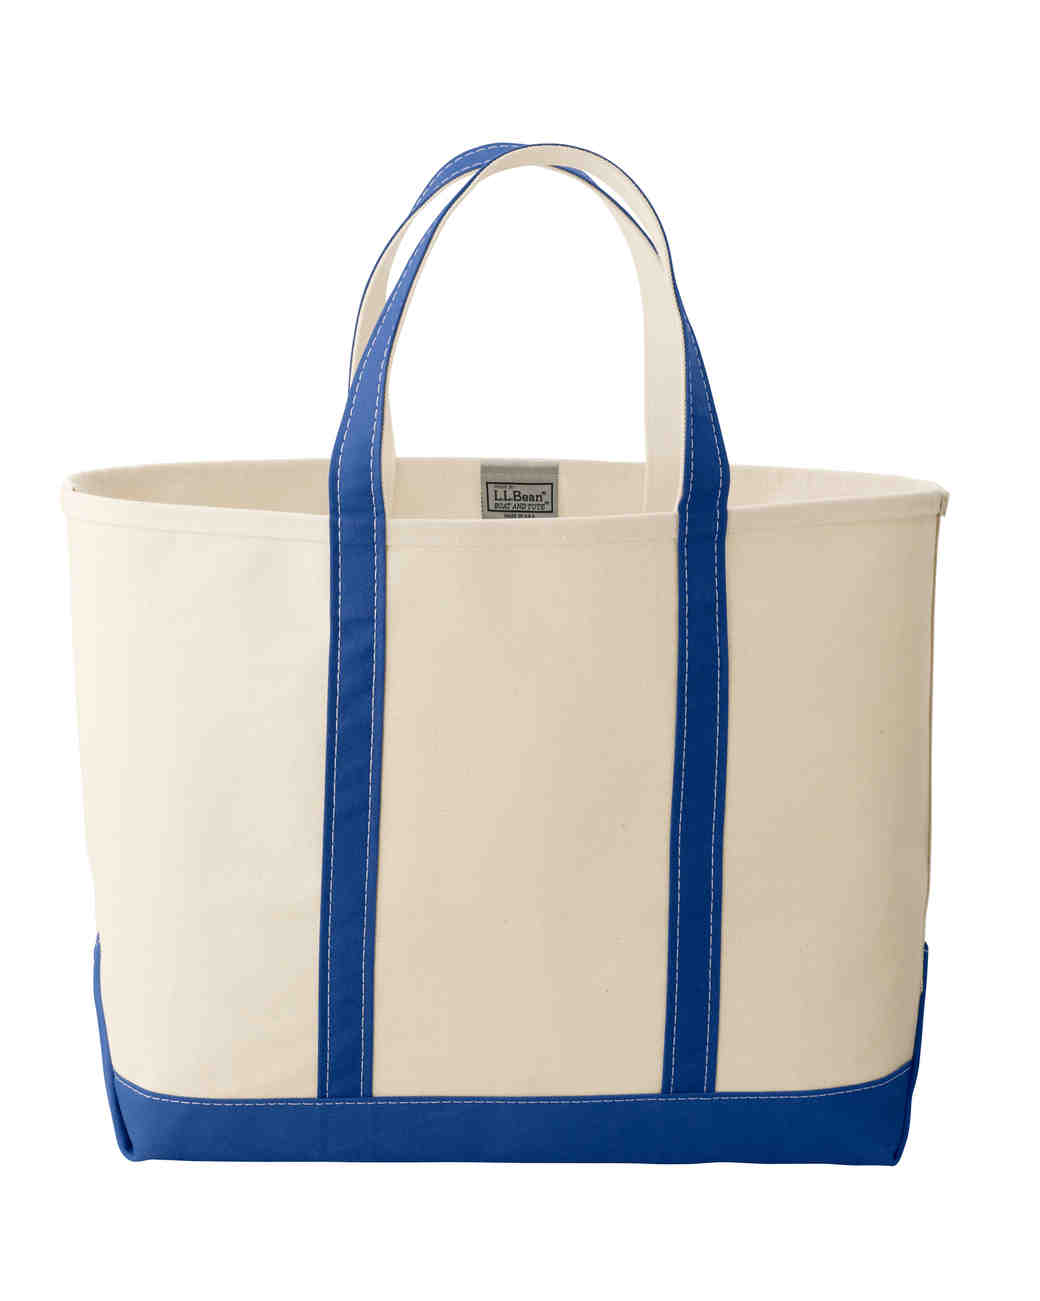 bridesmaid-gifts-llbean-bote-tote-0914.jpg